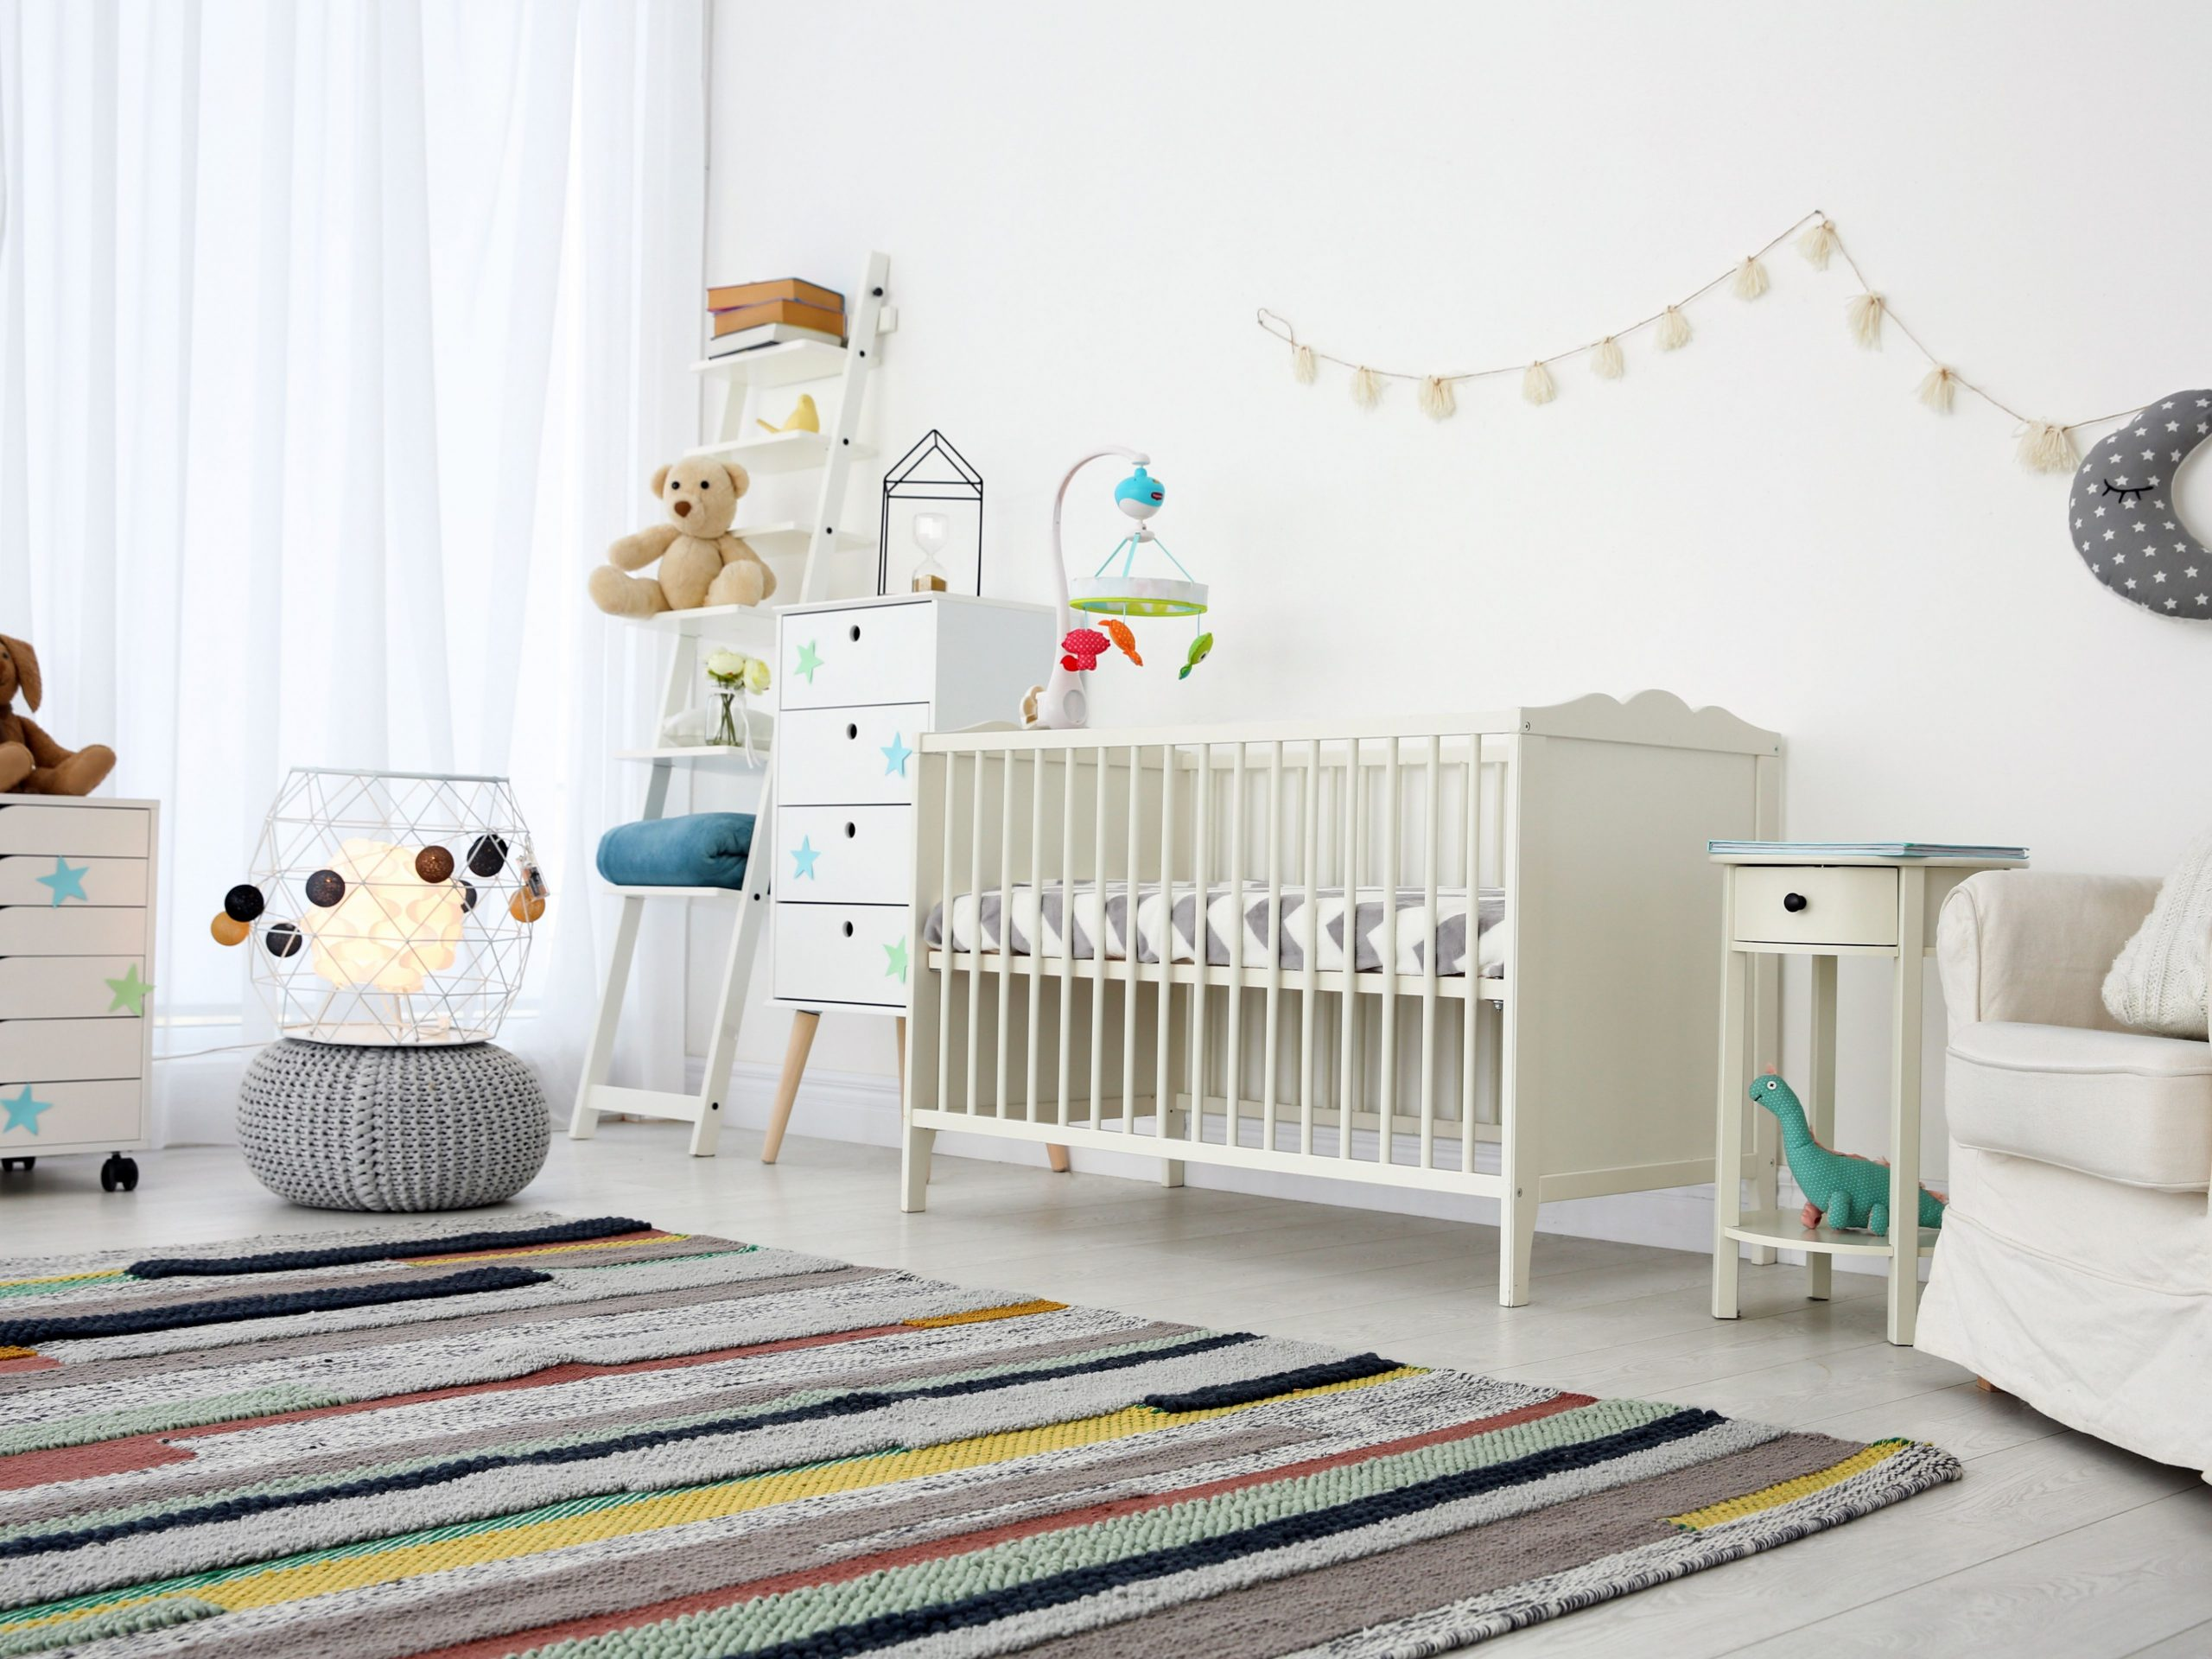 How to Choose a Rug for the Nursery - Baby Room Carpet